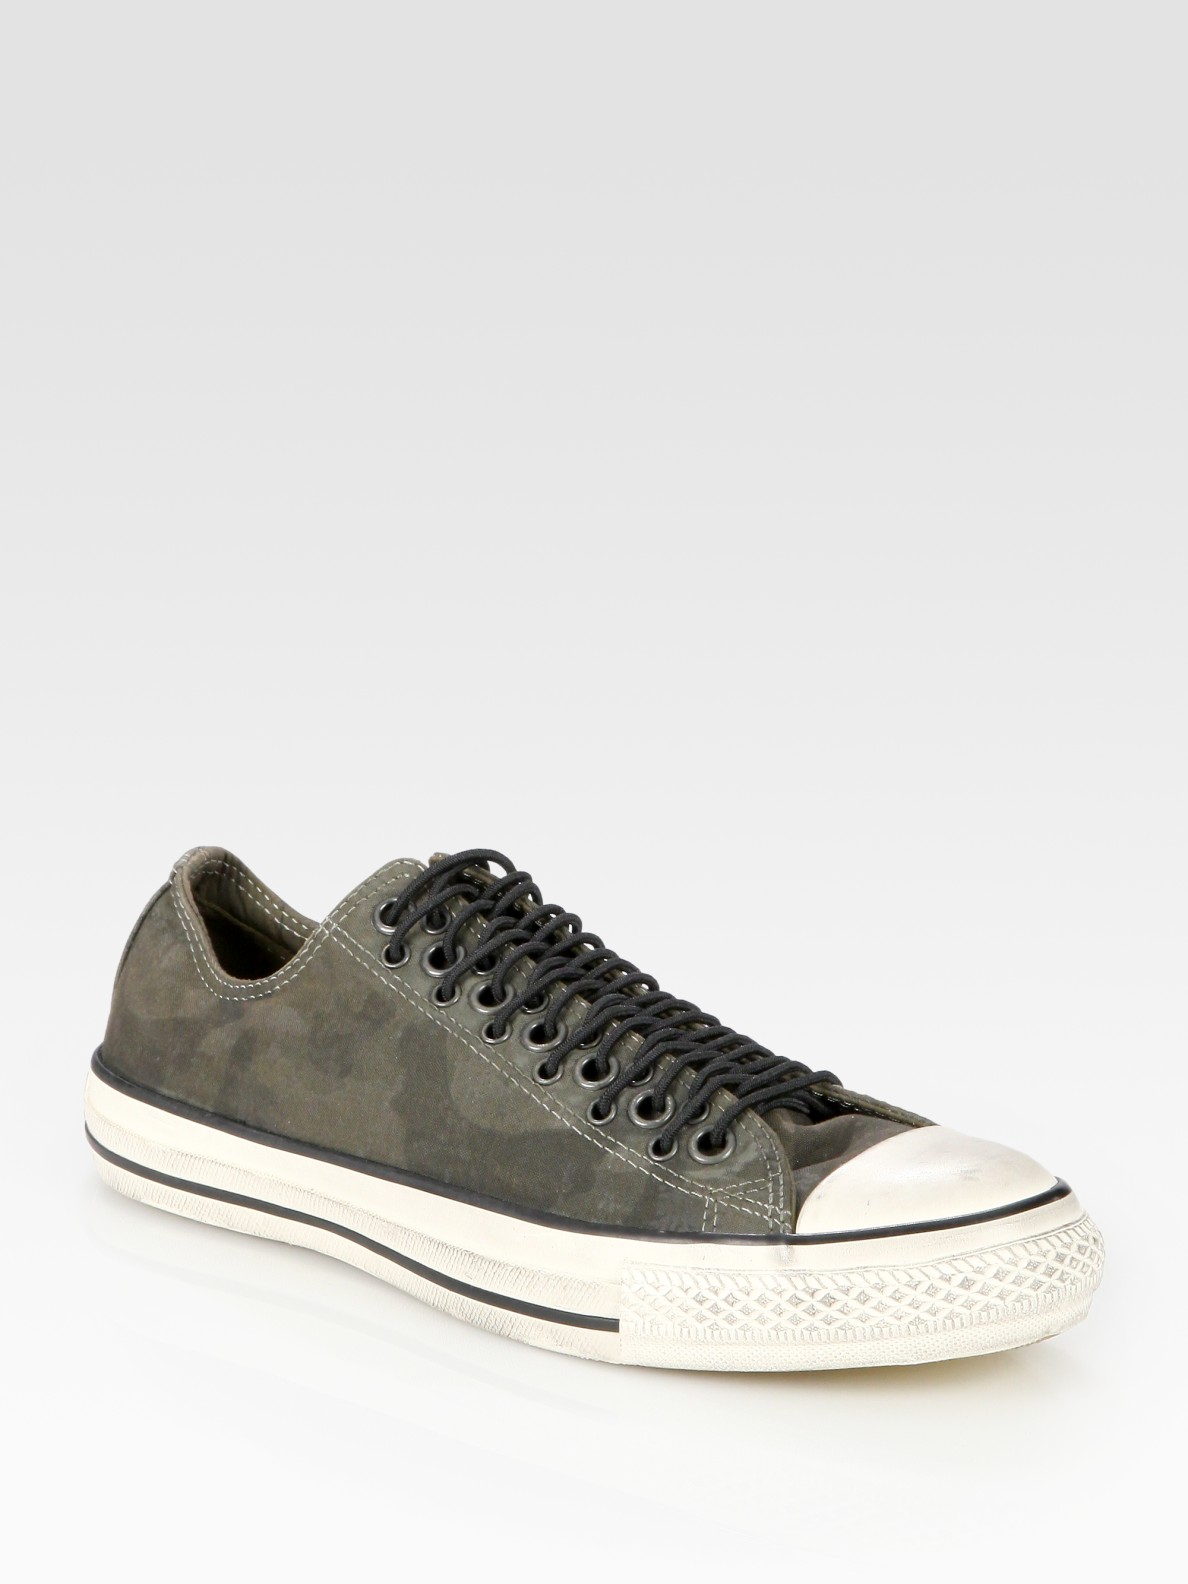 buy online 8fdc5 85564 Lyst - Converse John Varvatos Camouflage Canvas Sneakers in